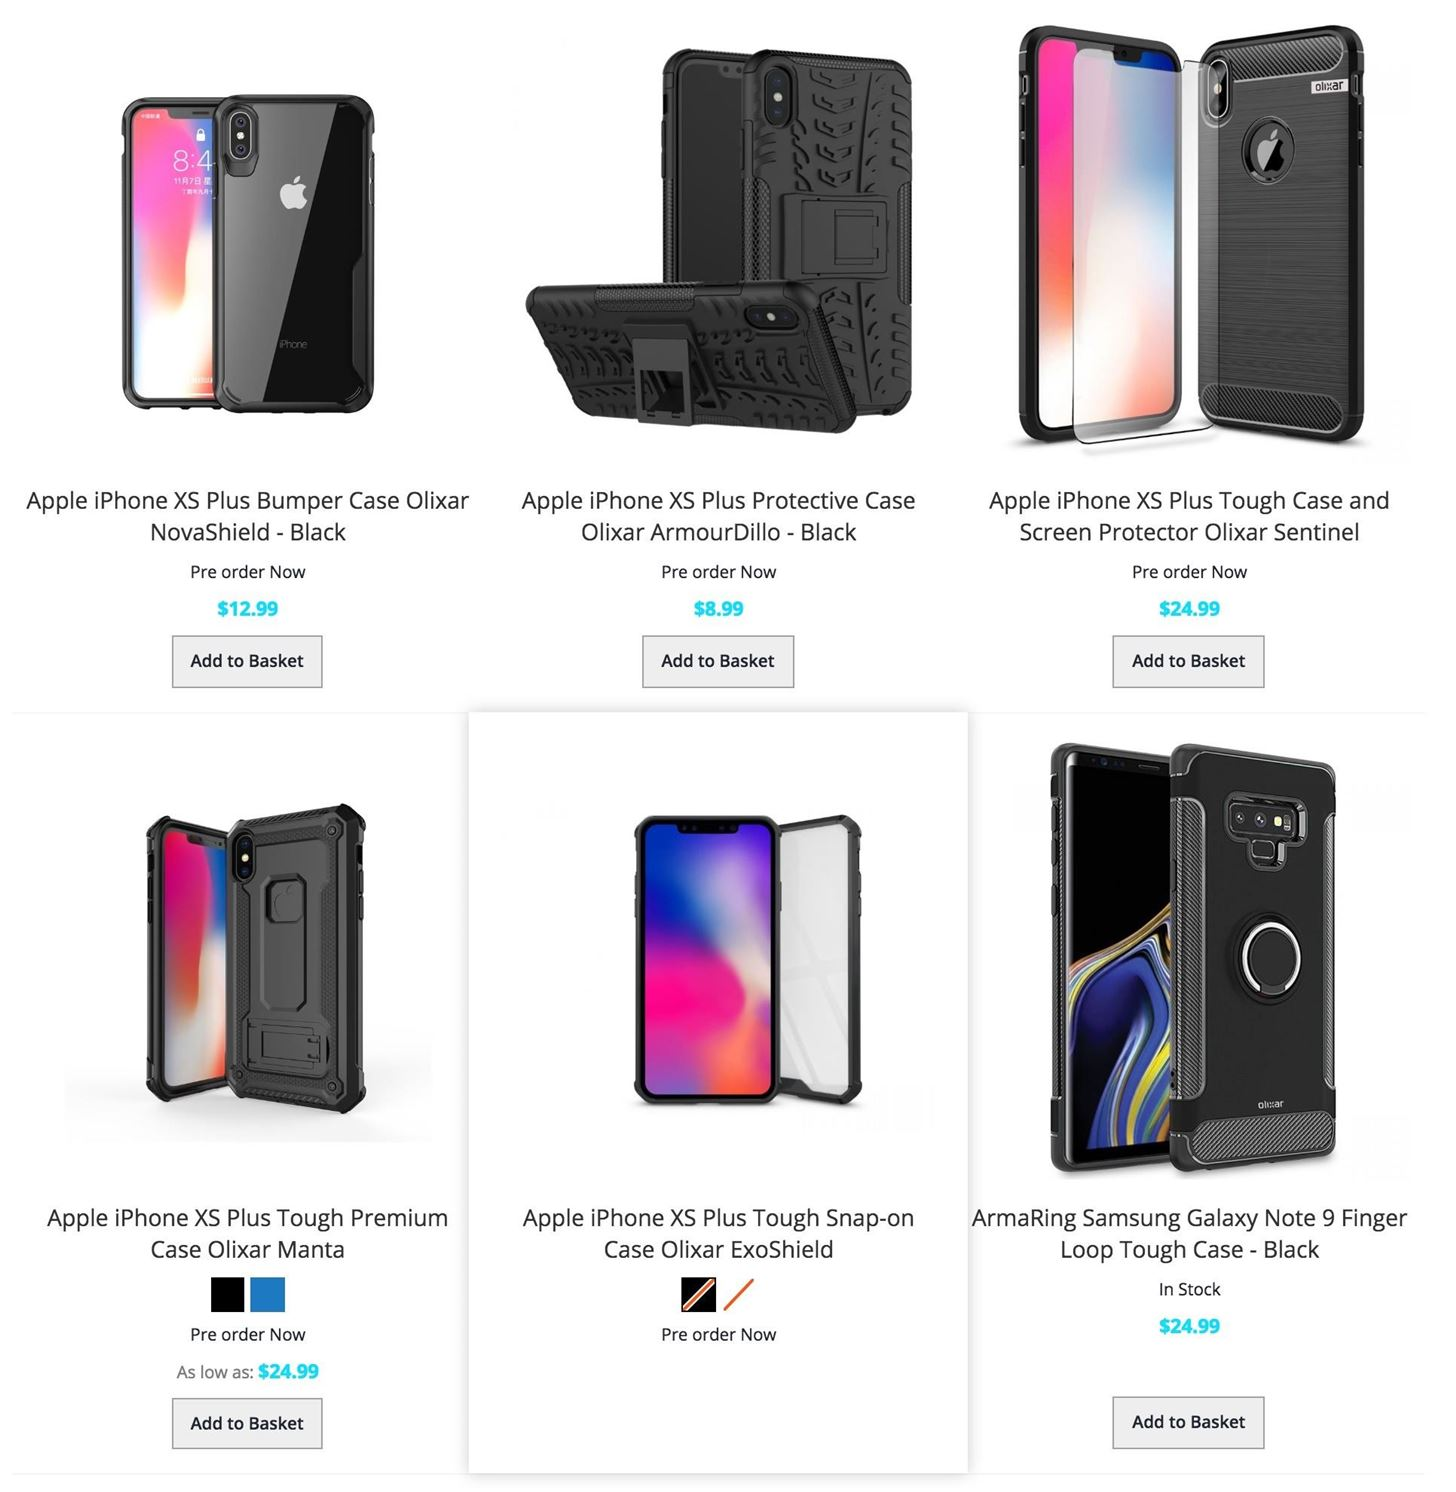 Case Makers are Ready for the New iPhone 9, XS & XS Plus with Purchase & Preorder Pages Live Right Now